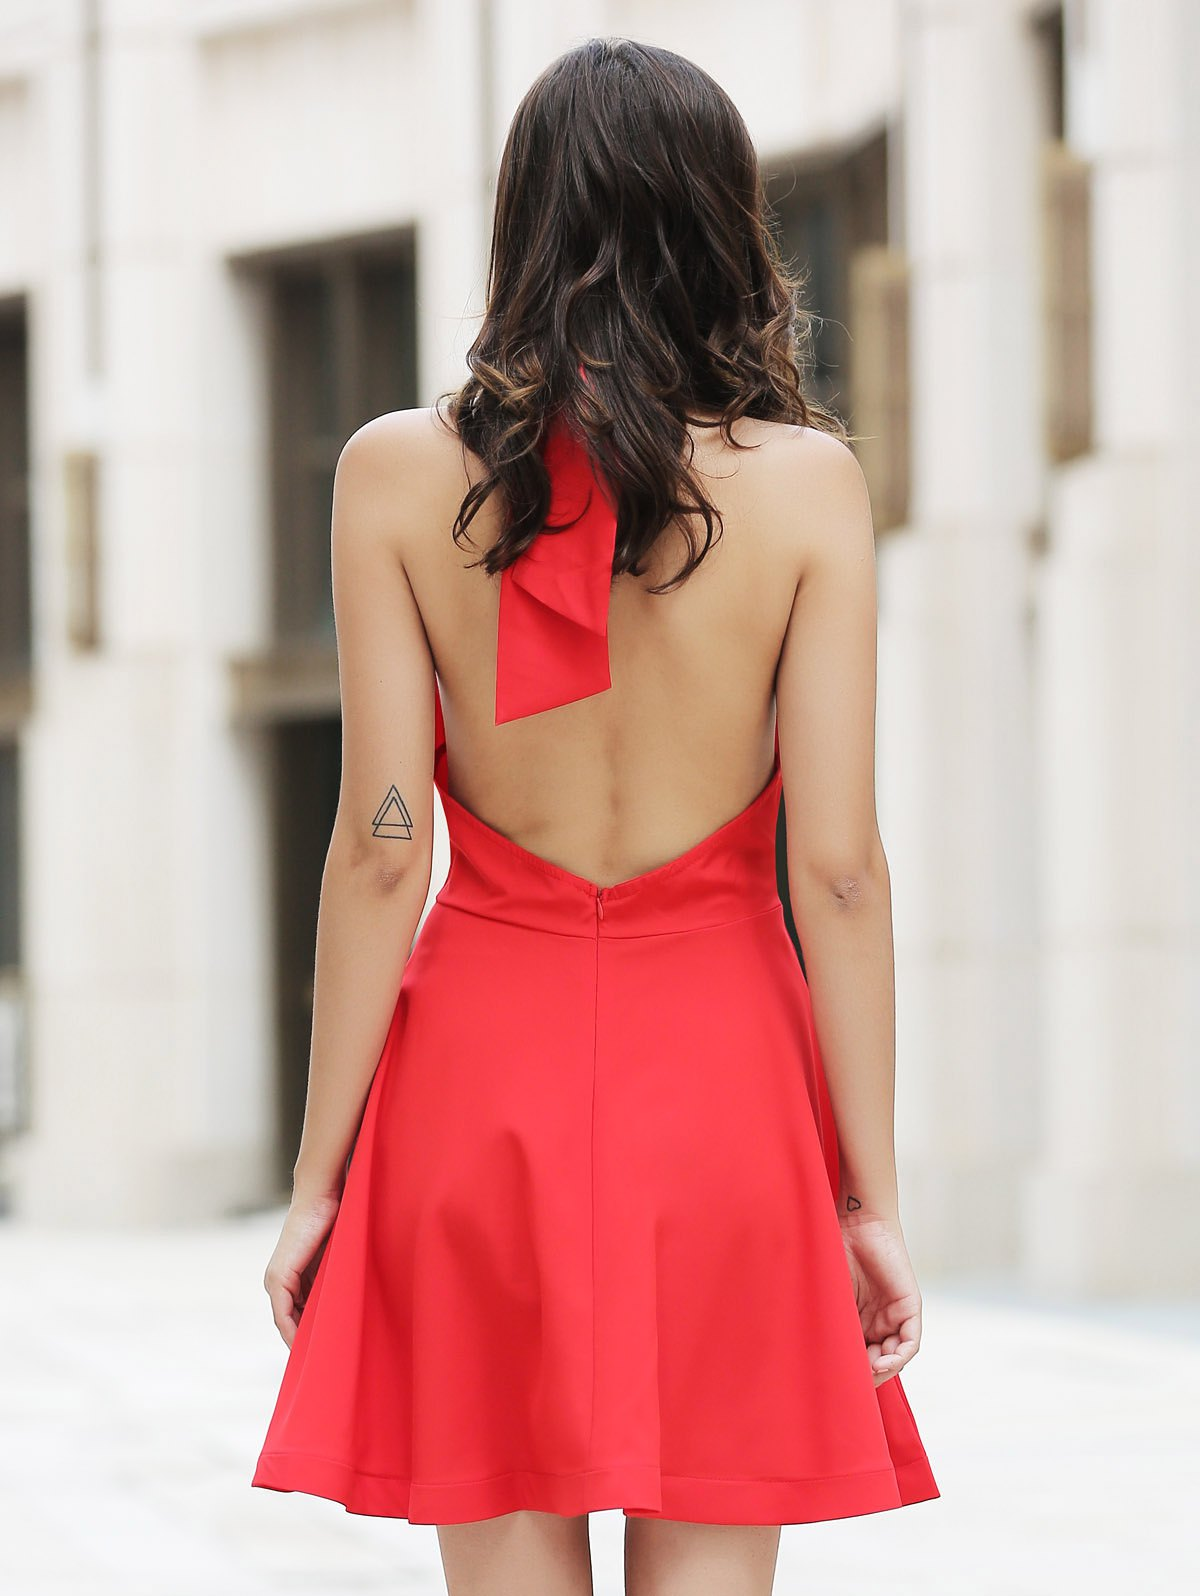 Chic High Neck Backless Red Sleeveless Dress For Women - RED S